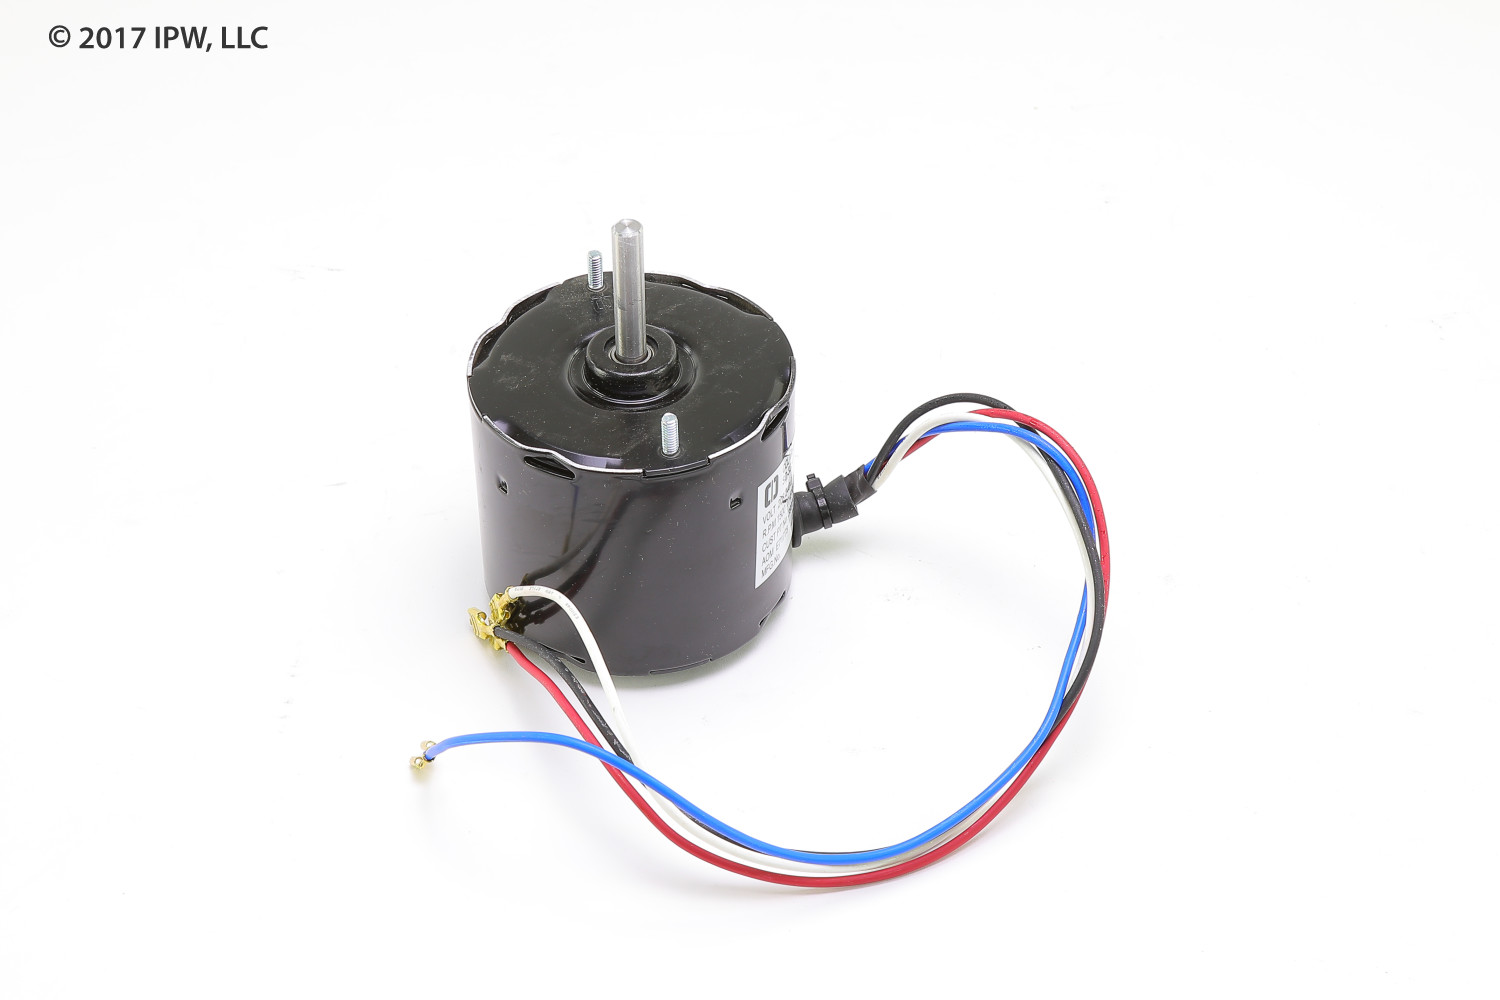 Marley Engineered Products 3900-2014-000 25W 208-240/277V 1650RPM Motor